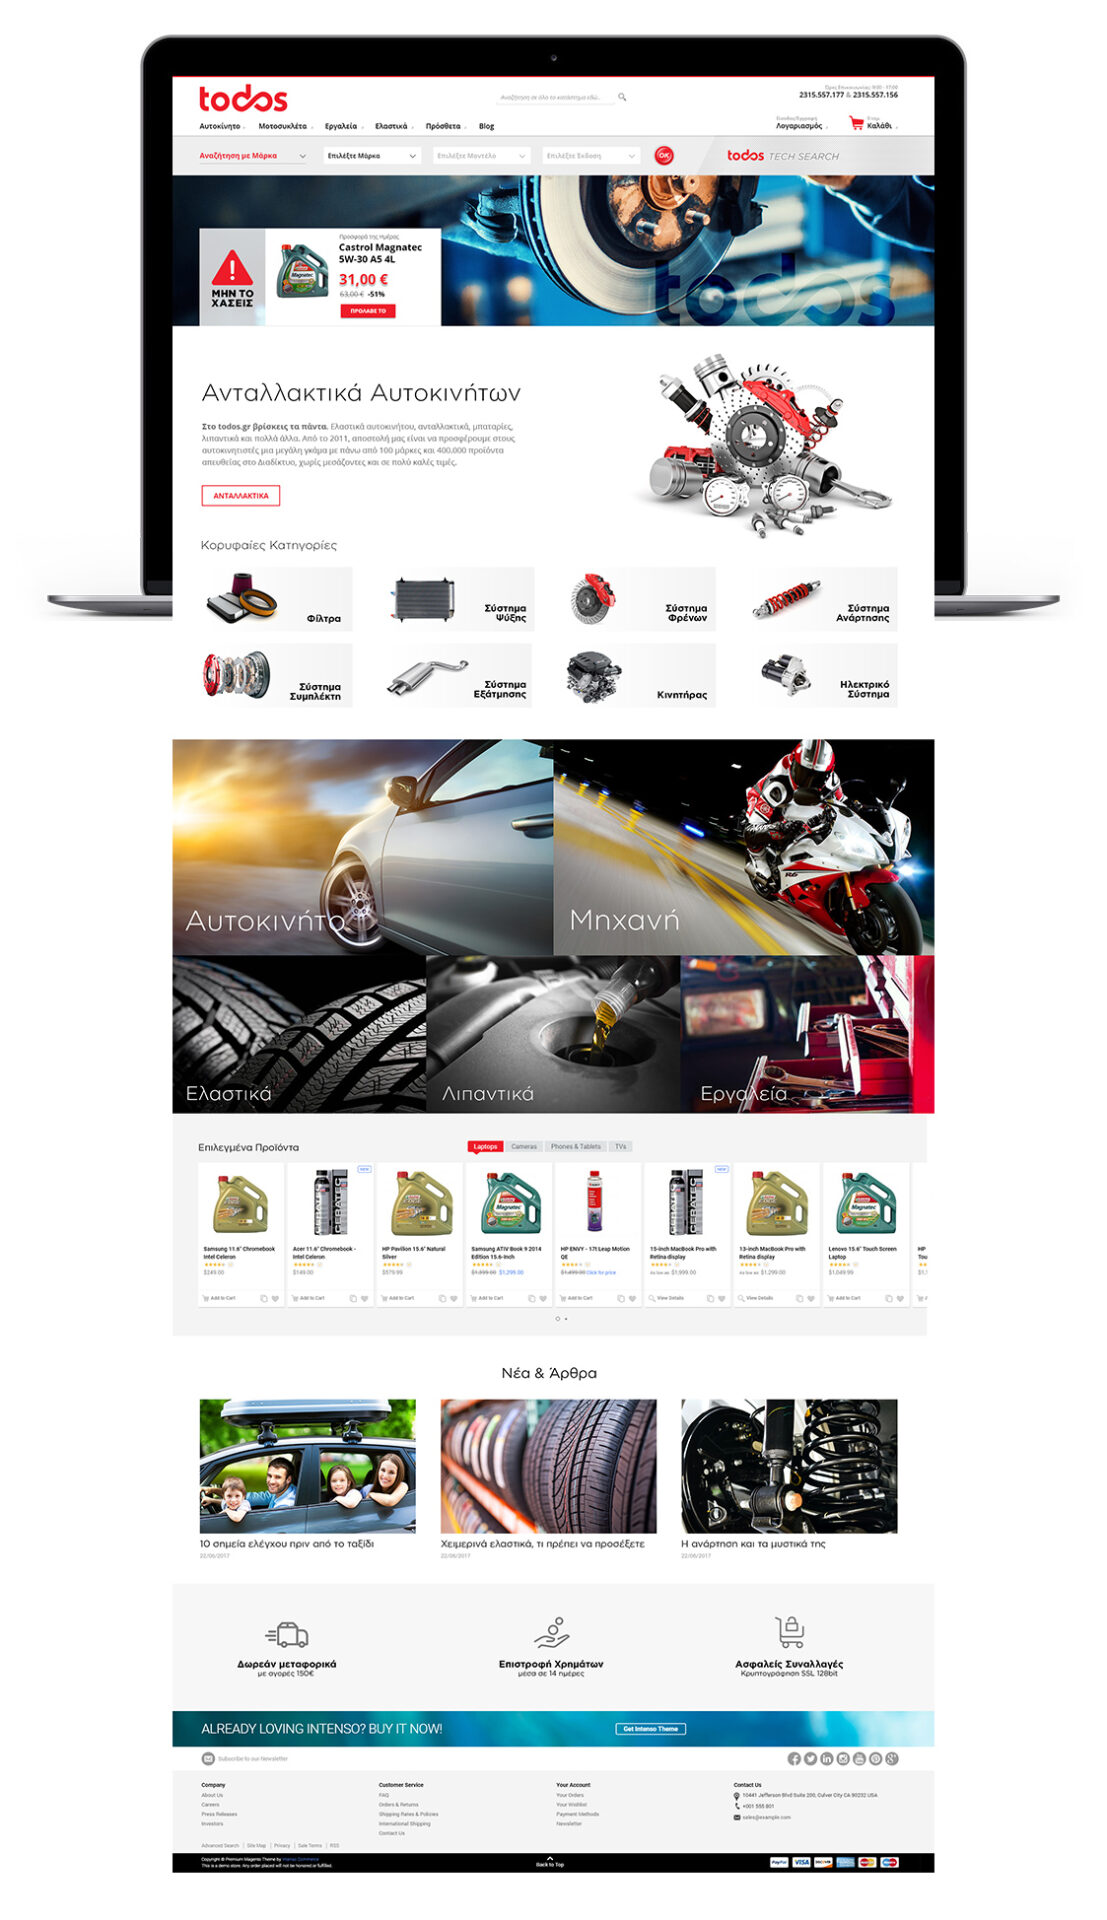 magento eshop for Todos in Thessaloniki - full view